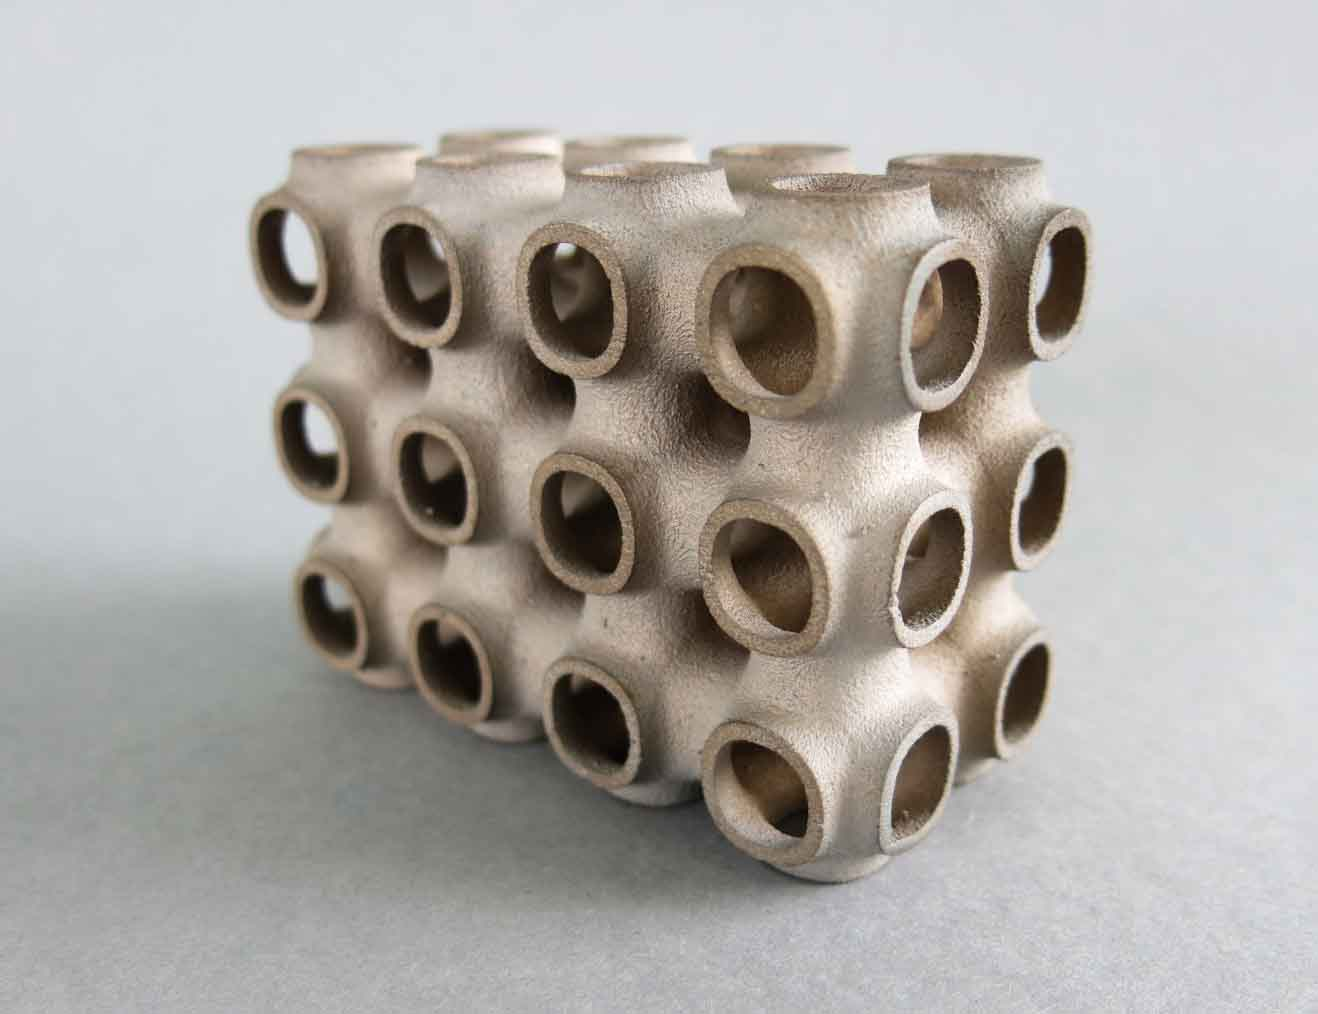 3D printing with new material Metal Binder Jetting Stainless Steel